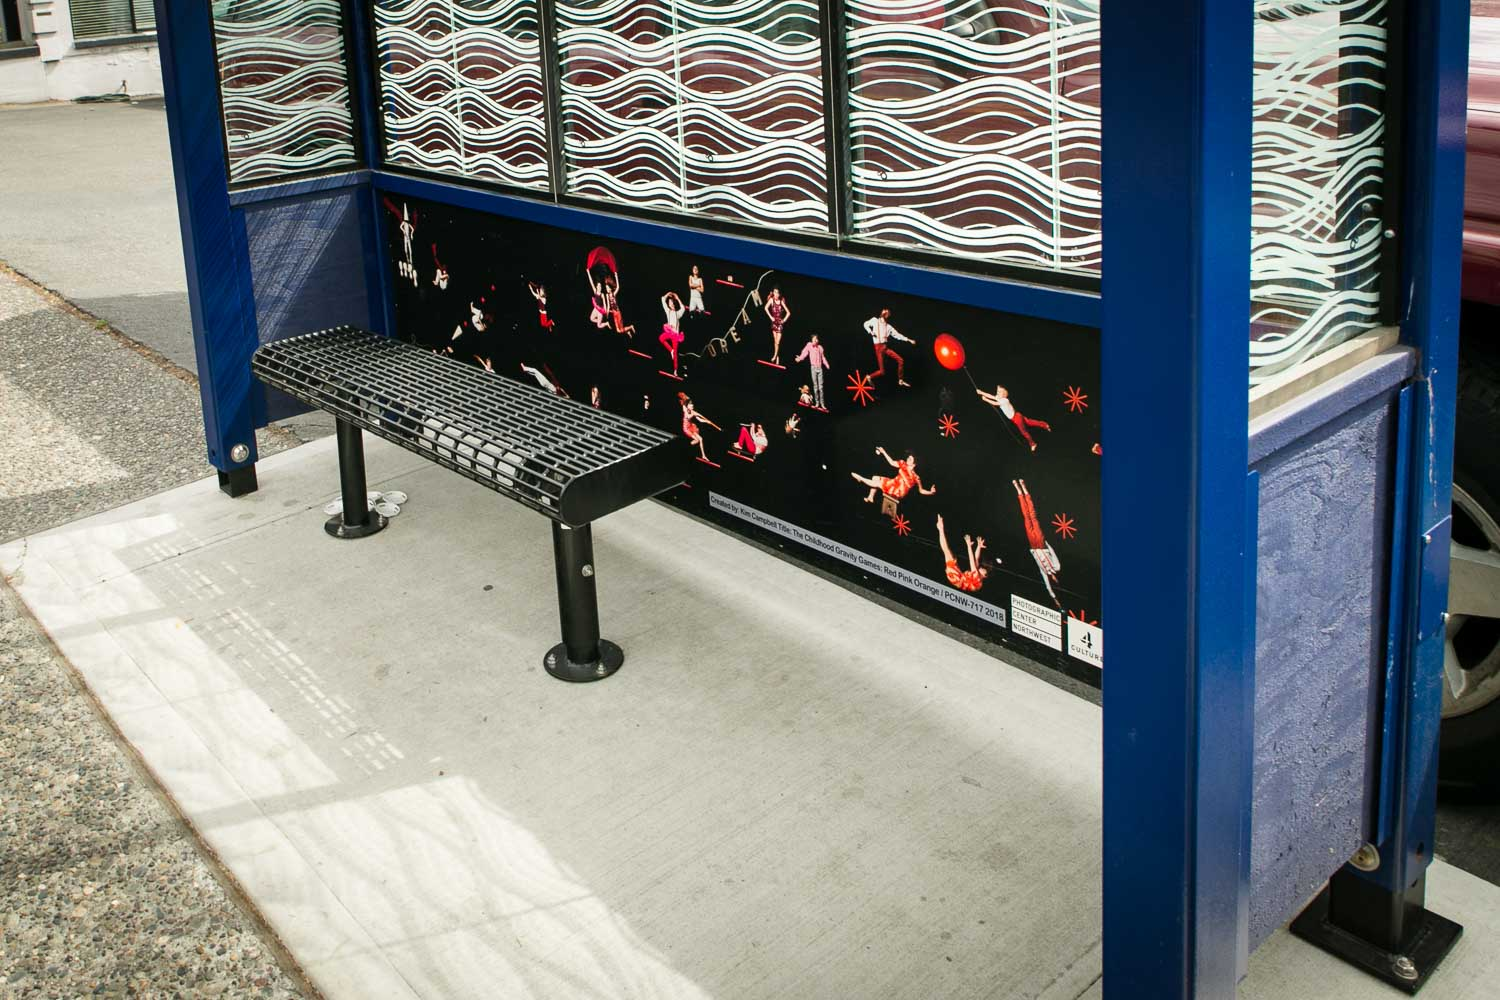 kim-campbell-panorama-bus-bench-35th-ave-seattle_02.jpg